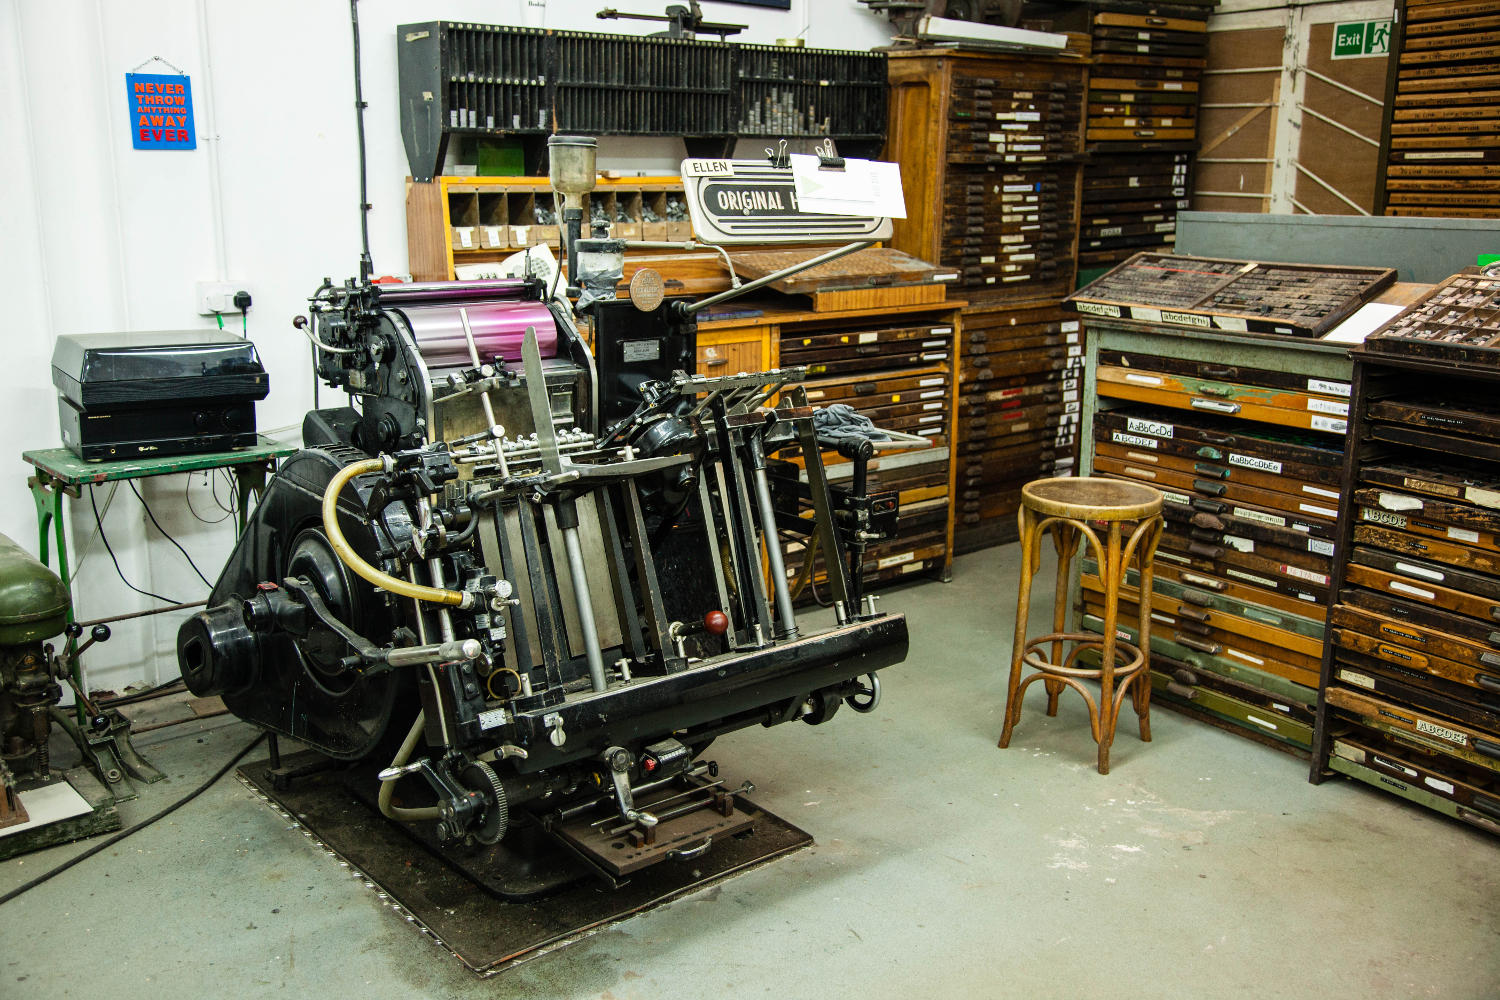 giant metal printing press empty